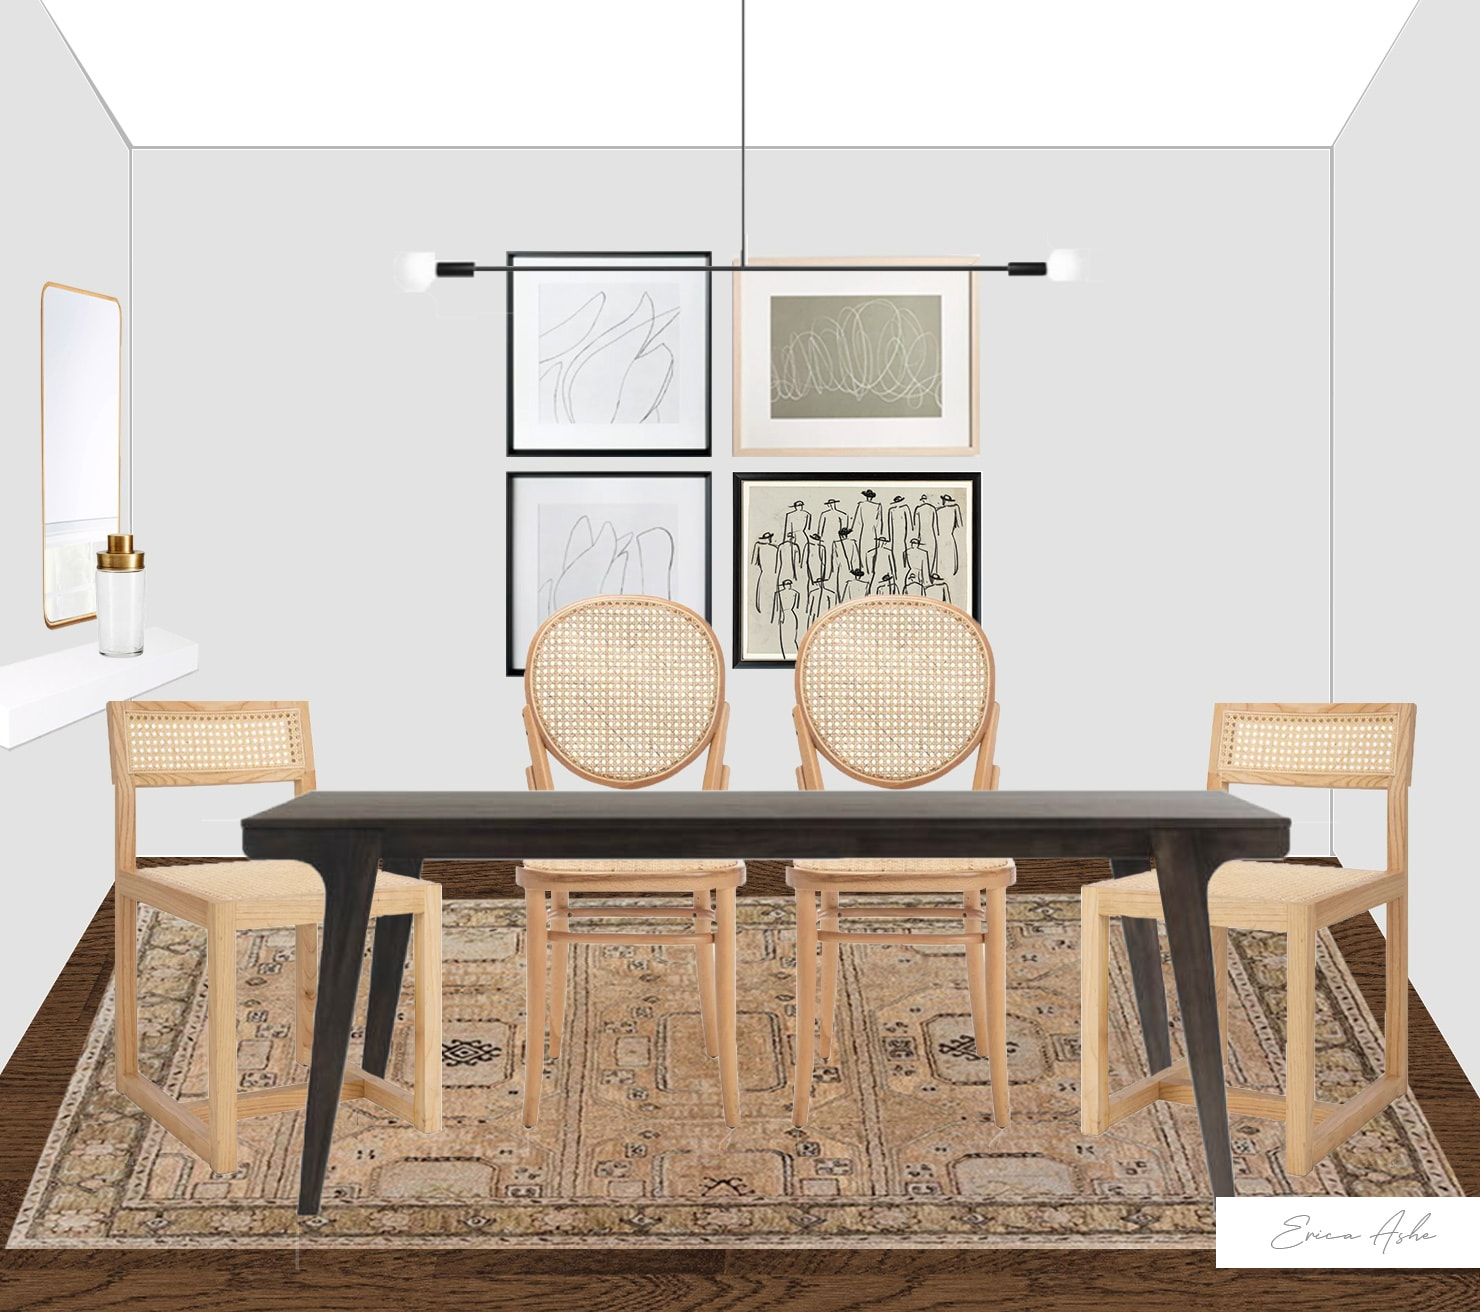 Designing a dining room in the city